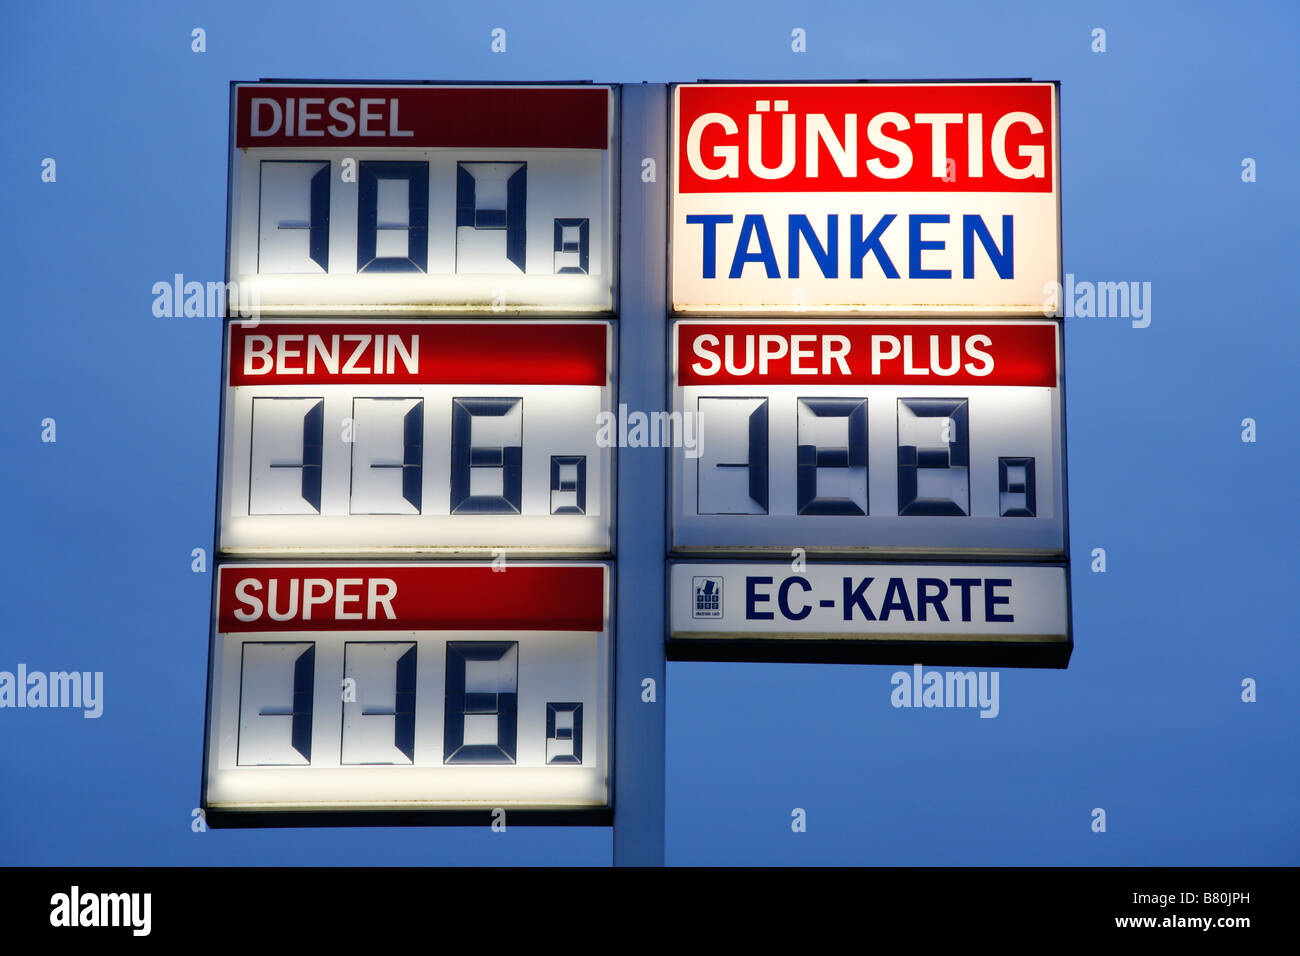 Germany fuel prices